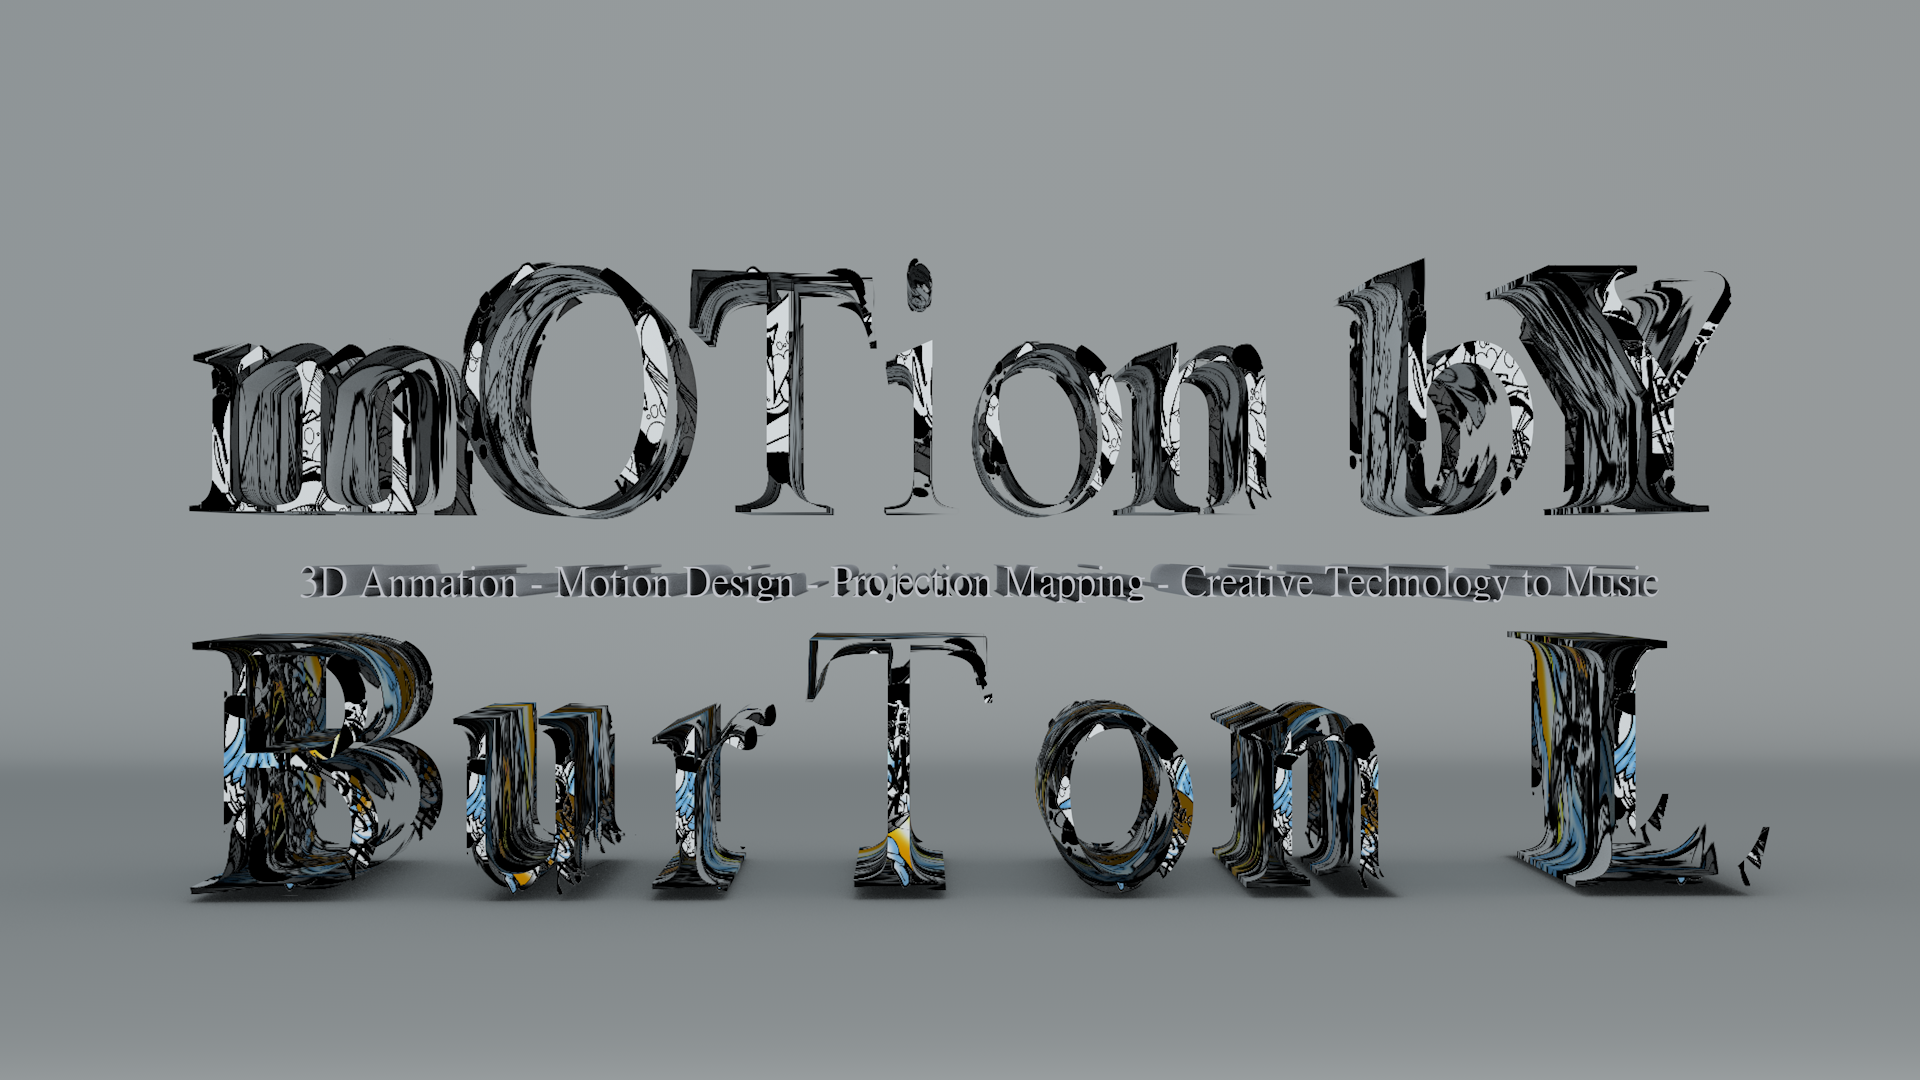 The static 3D logo for Motion by Burton L